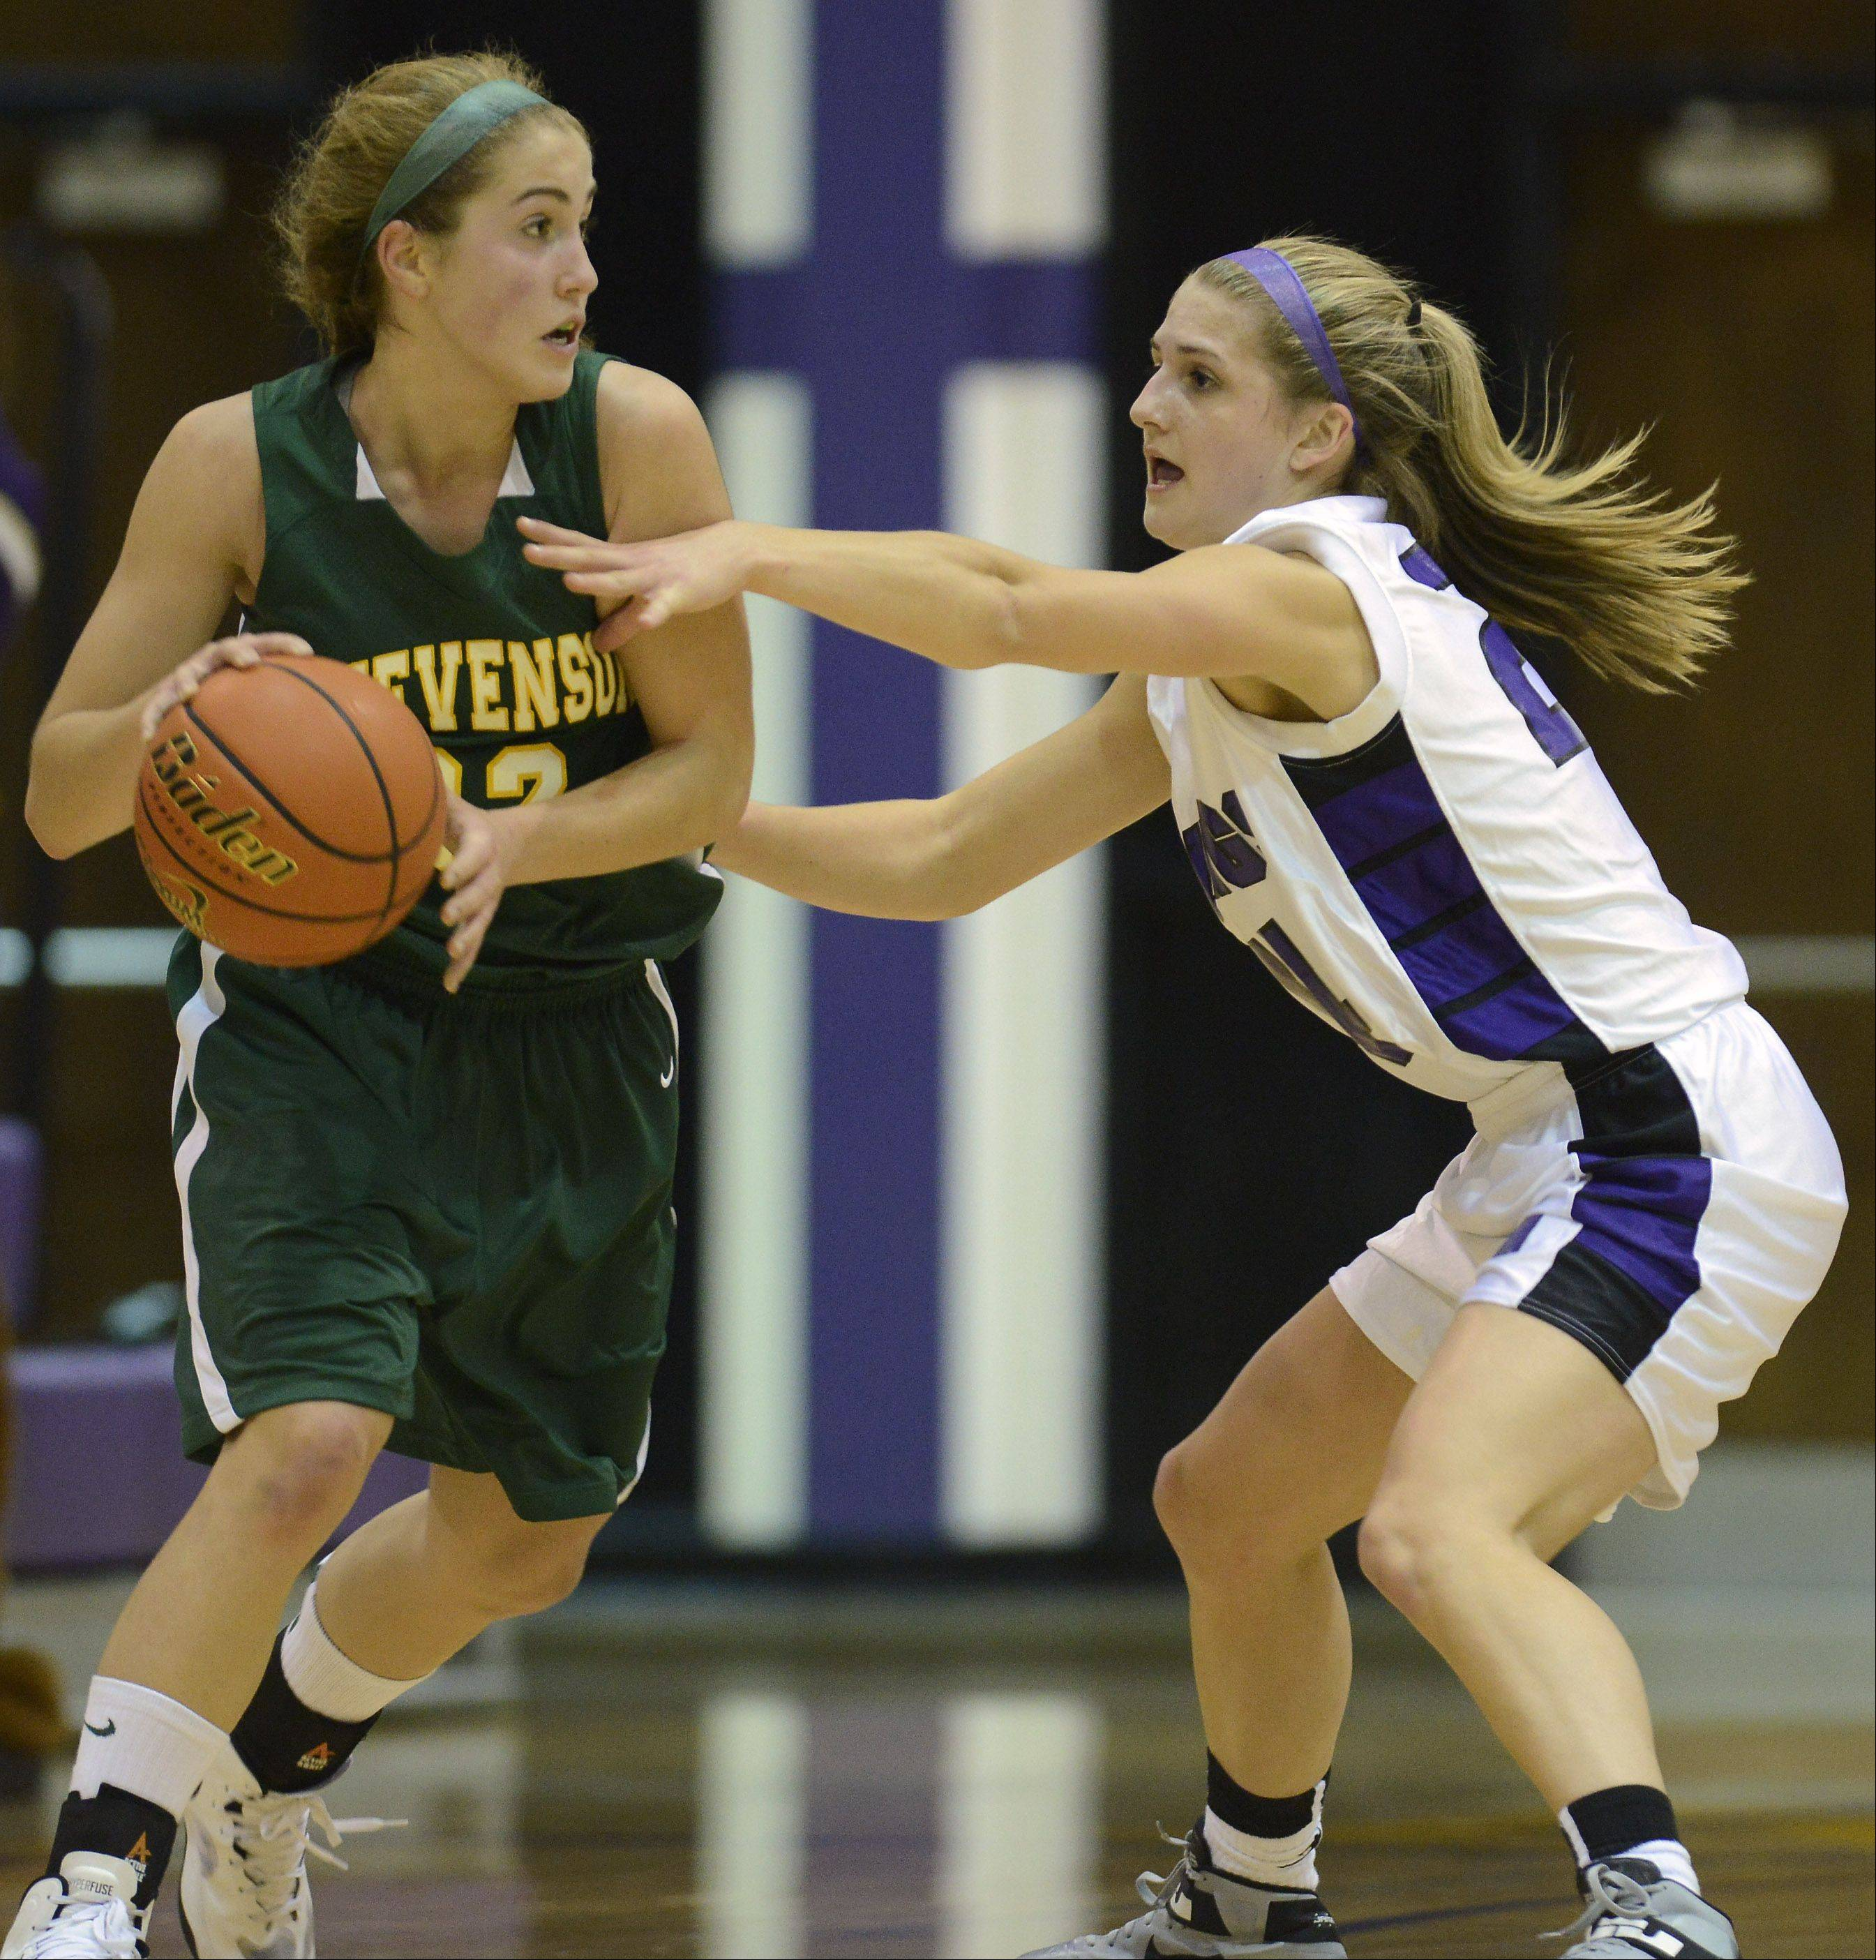 Stevenson's Sophia Way, left, looks for an open teammate while being guarded by Rolling Meadows defender Alexis Glasgow on Tuesday.